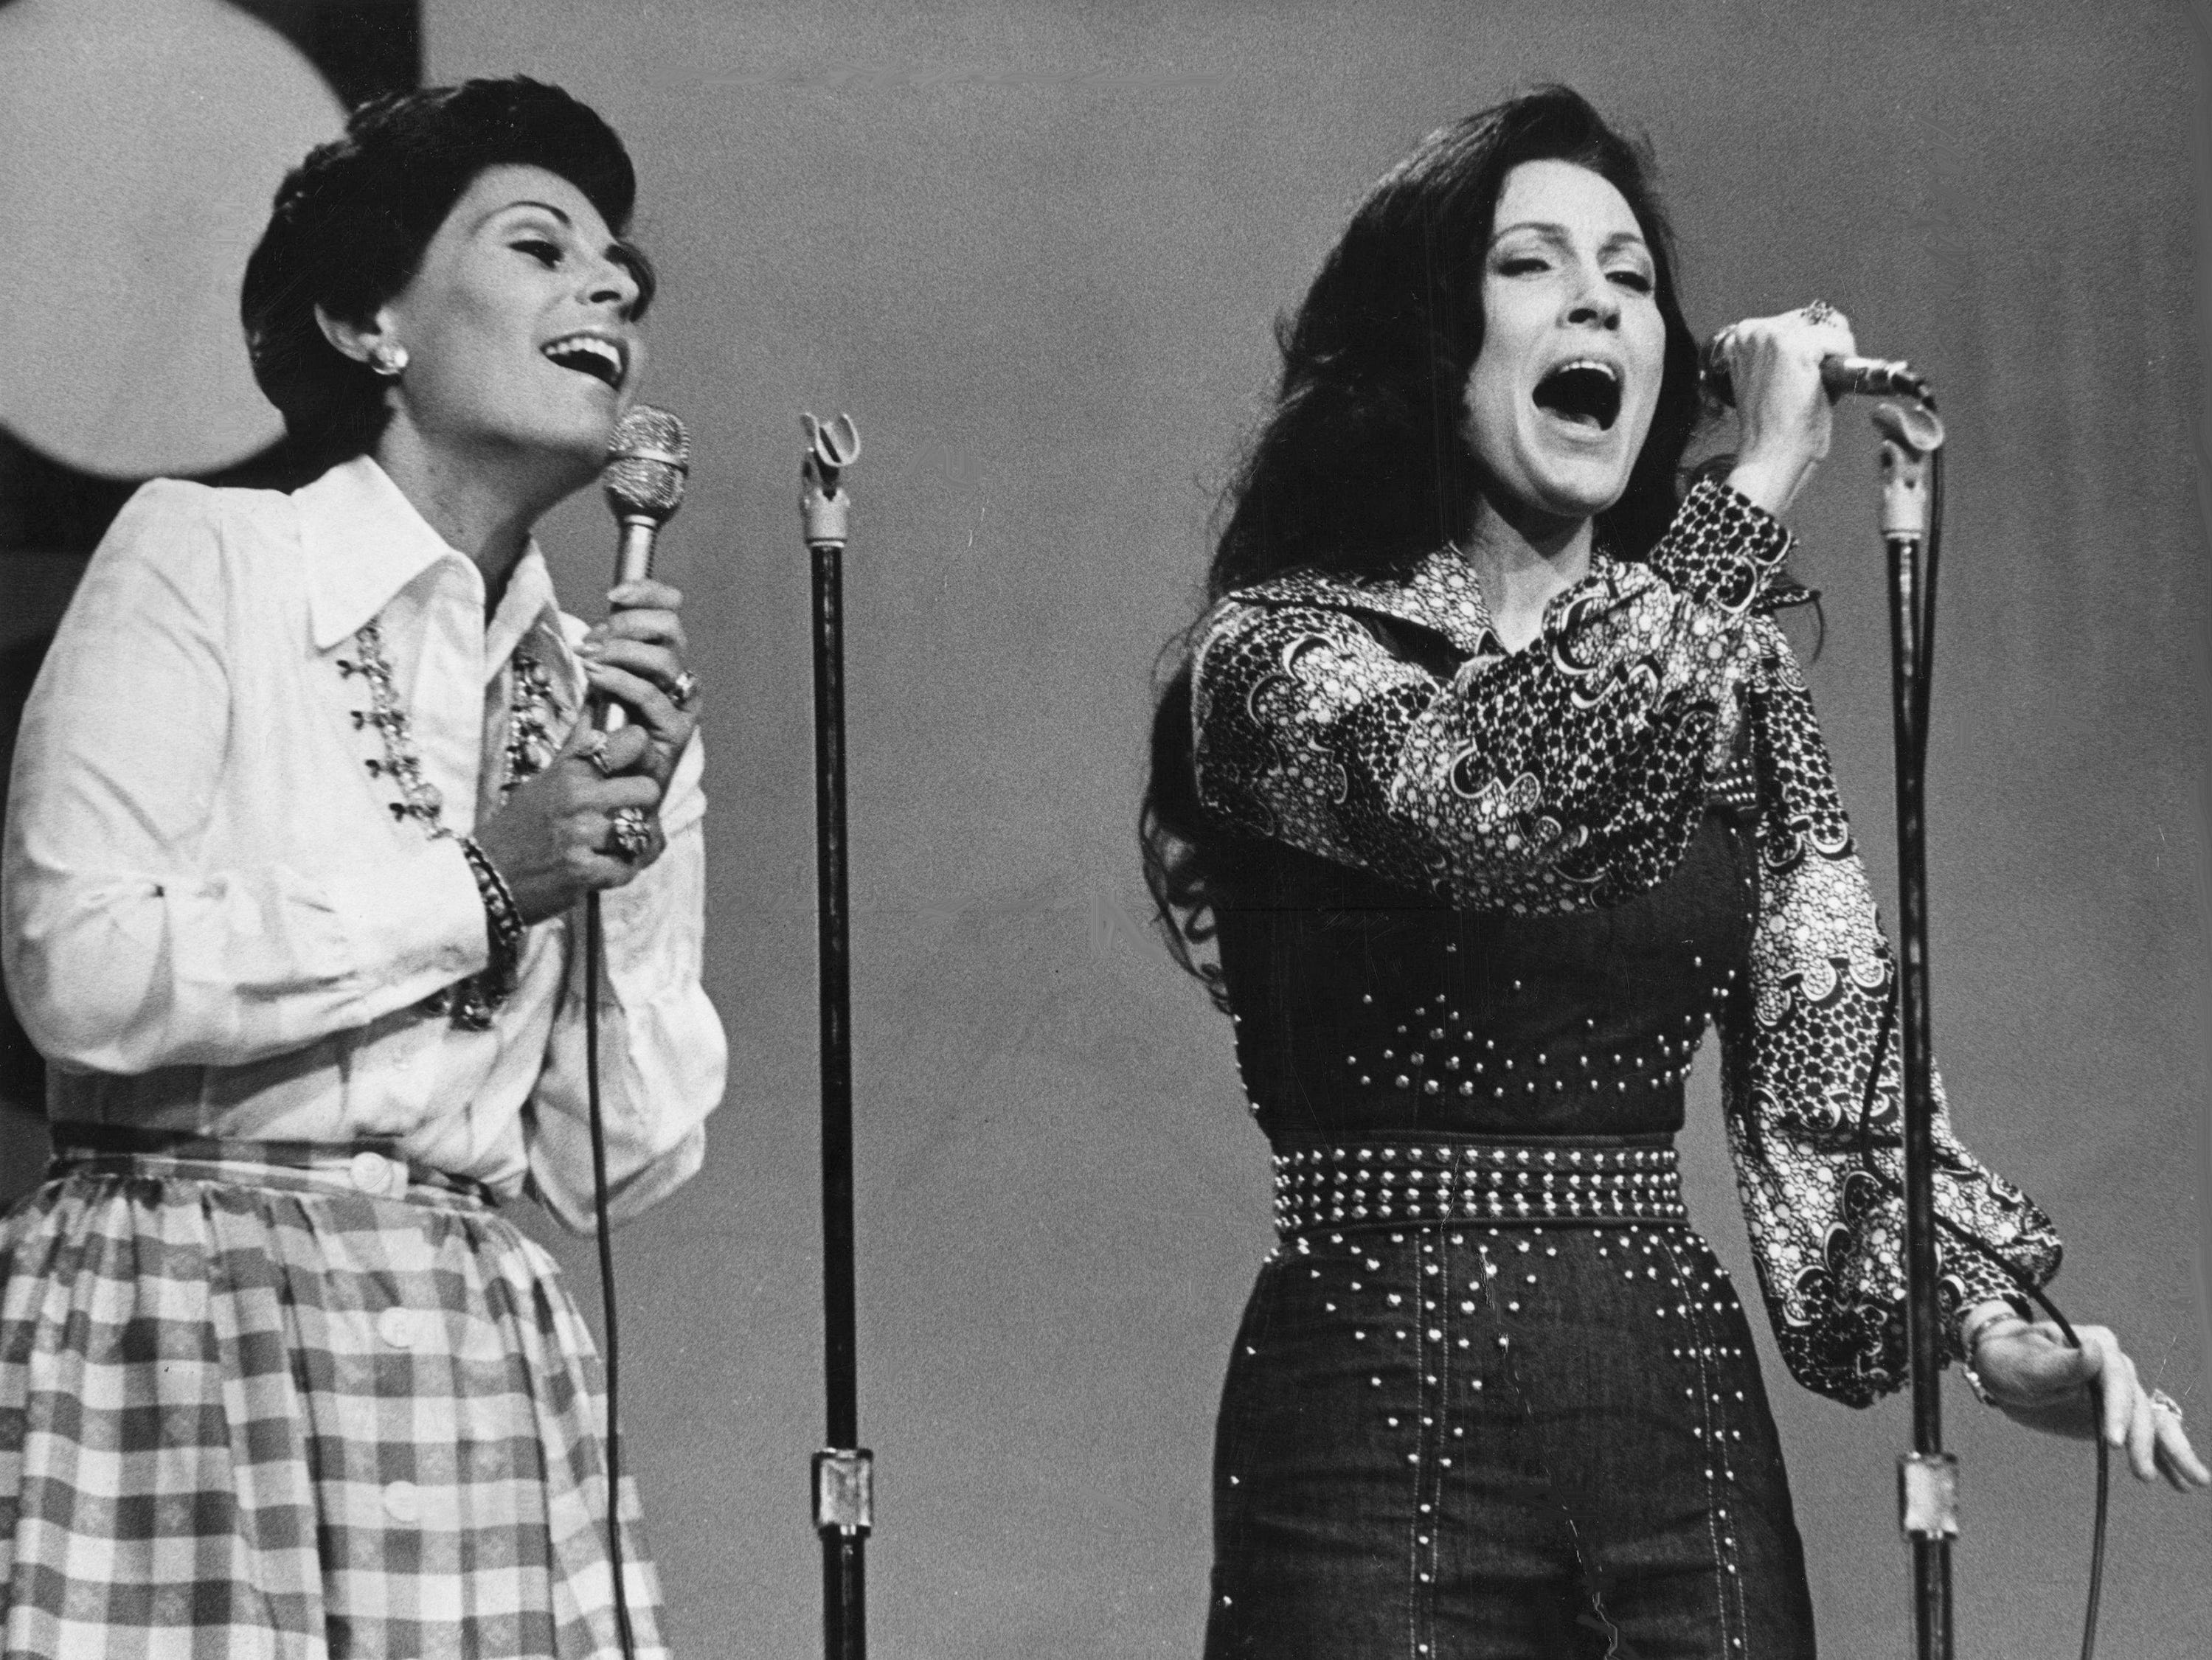 """Metropolitan Opera soprano Roberta Peters, left, and Grand Ole Opry star Loretta Lynn perform a duet during The Mike Douglas Show taping at the Grand Ole Opry House April 29, 1975. Peters sang an aria and Lynn a country song before coming together for """"Secret Love."""""""